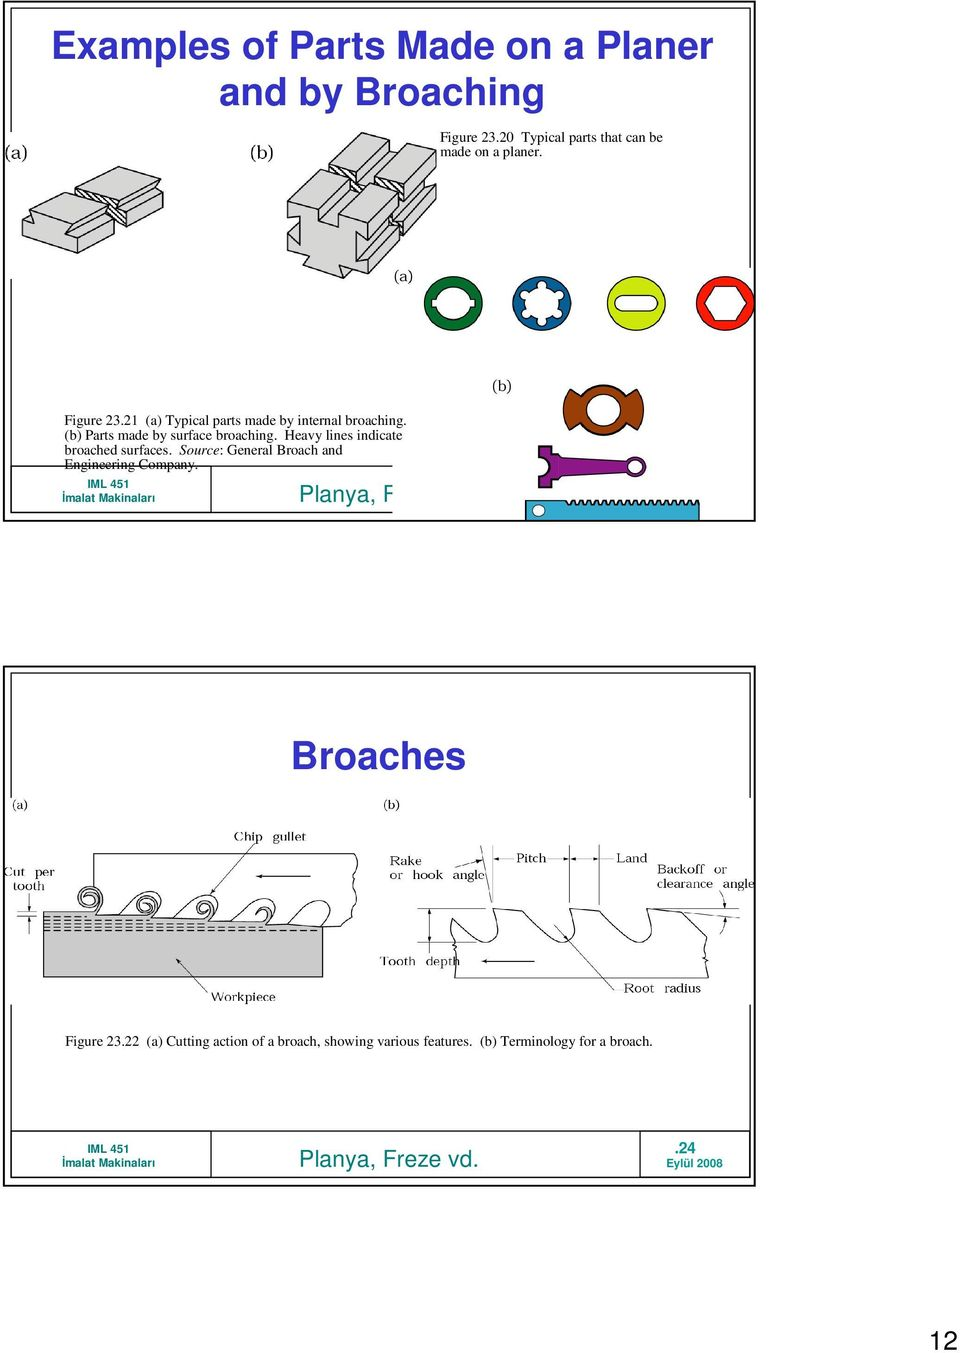 21 (a) Typical parts made by internal broaching. (b) Parts made by surface broaching.